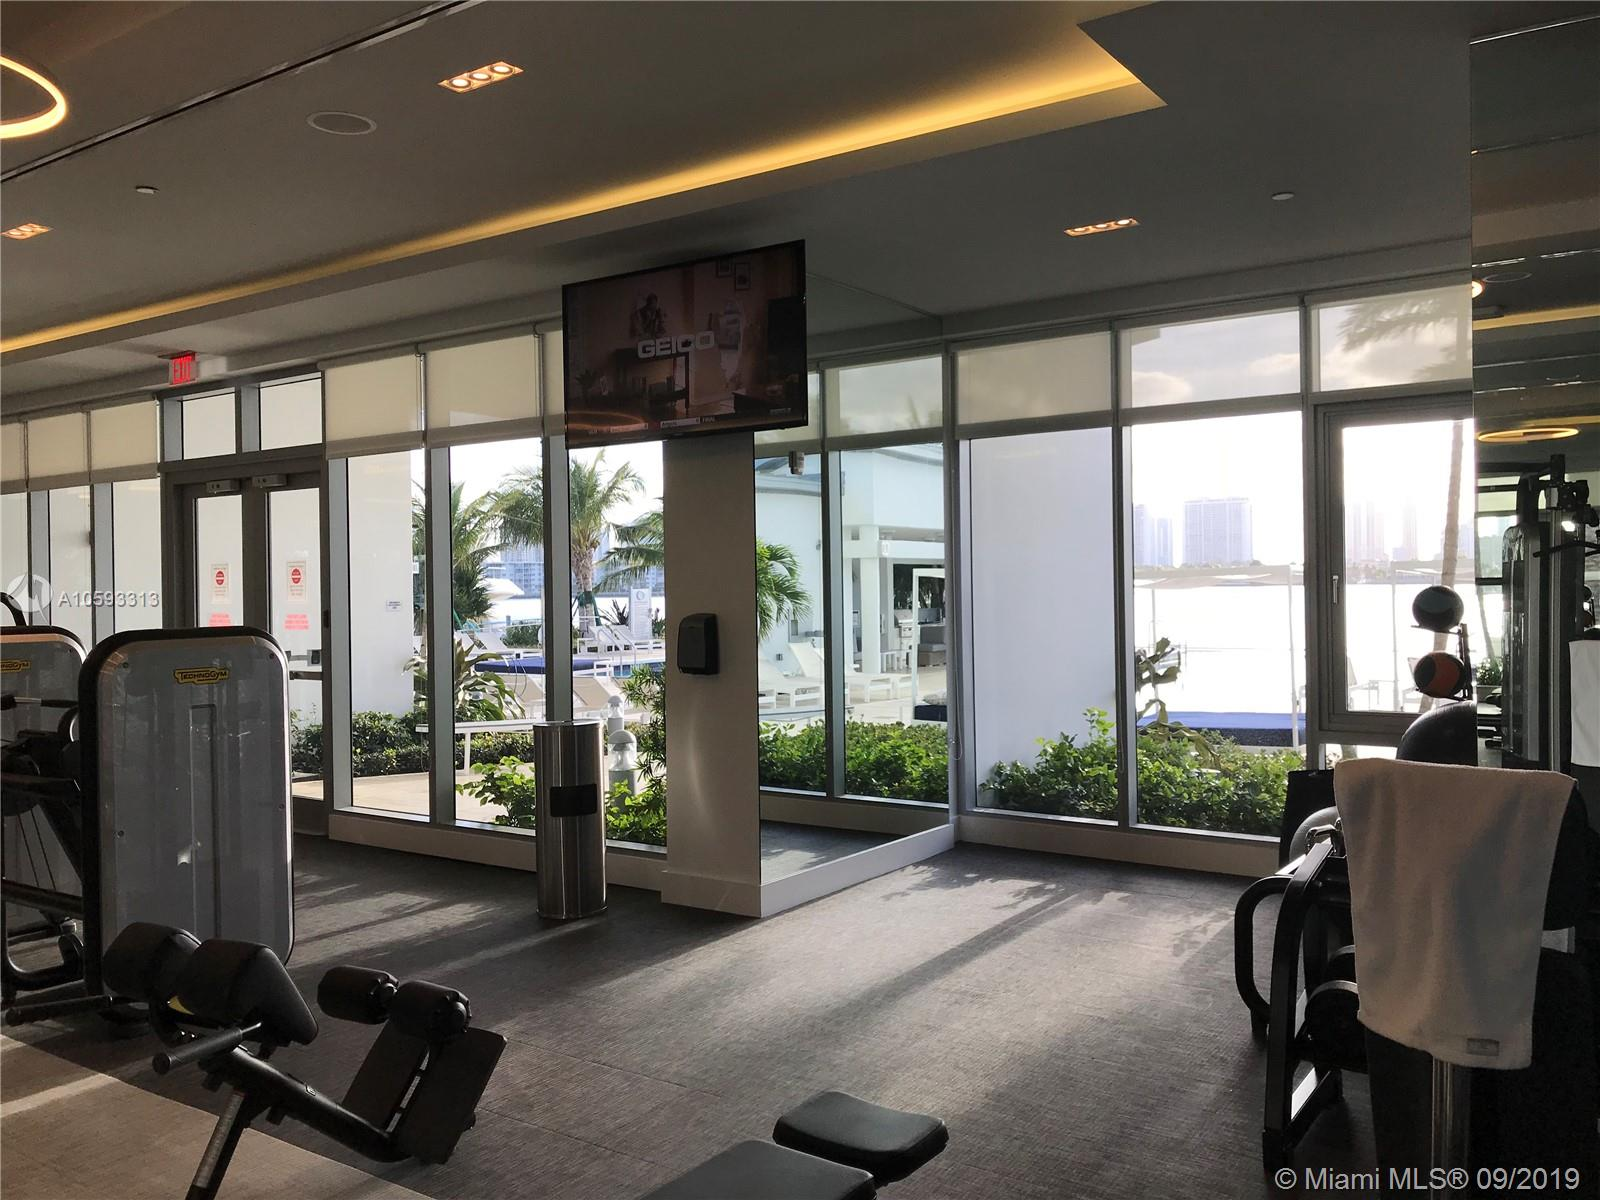 Marina Palms 1 #1808 - 17111 Biscayne Blvd #1808, North Miami Beach, FL 33160